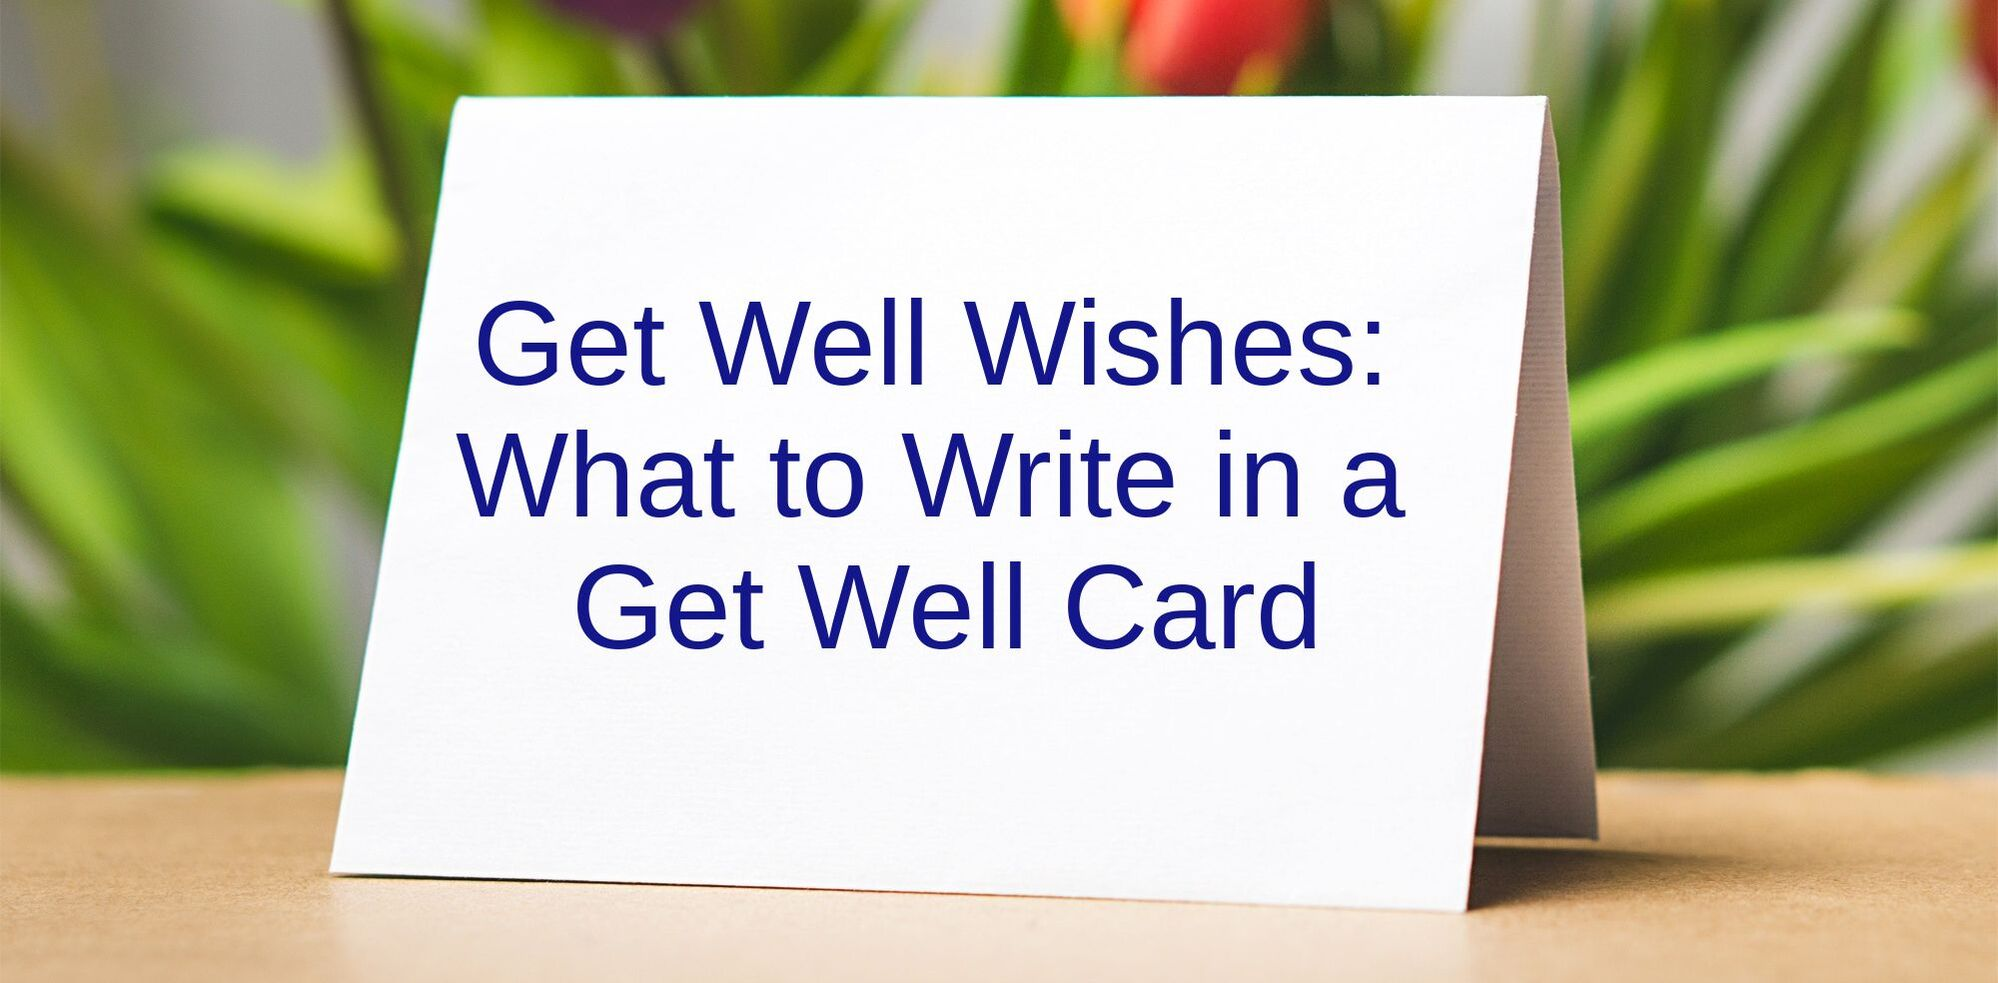 Get well wishes wishes messages sayings get well wishes m4hsunfo